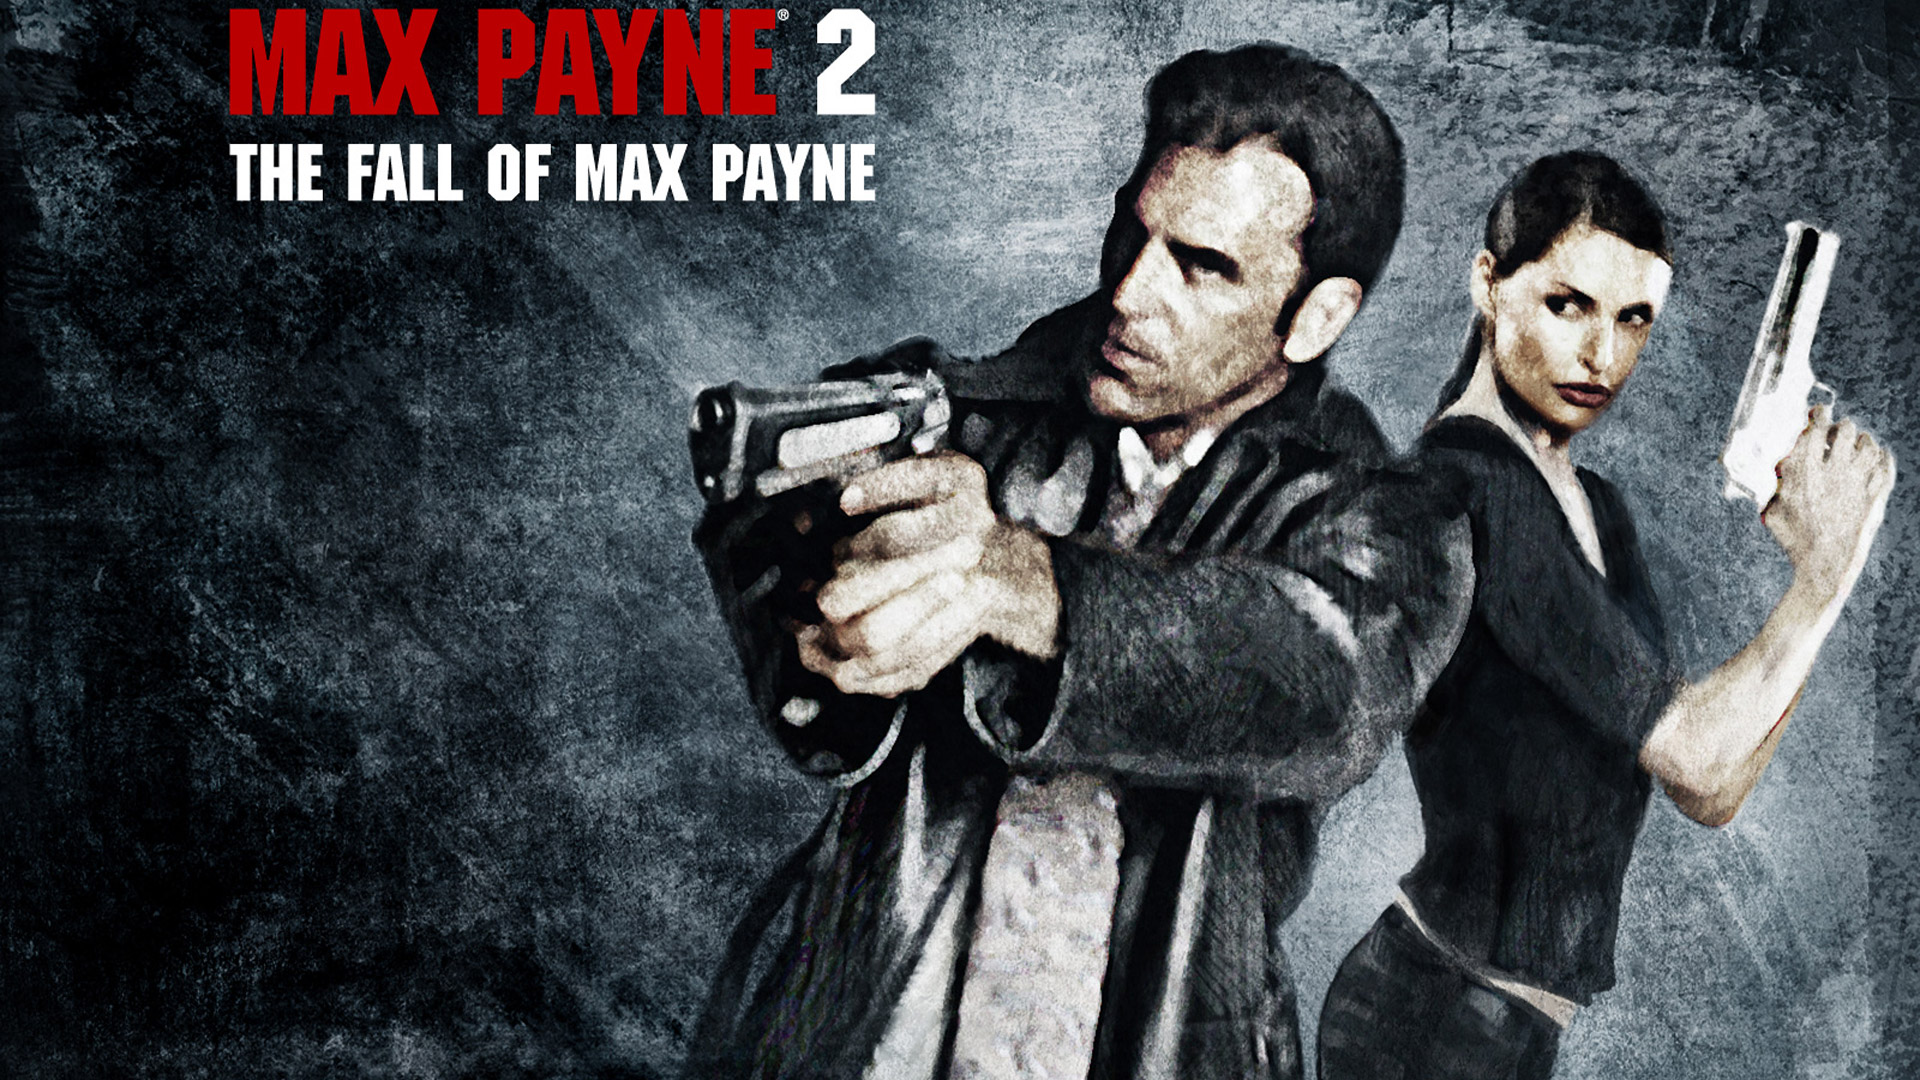 Free Max Payne 2: The Fall of Max Payne Wallpaper in 1920x1080